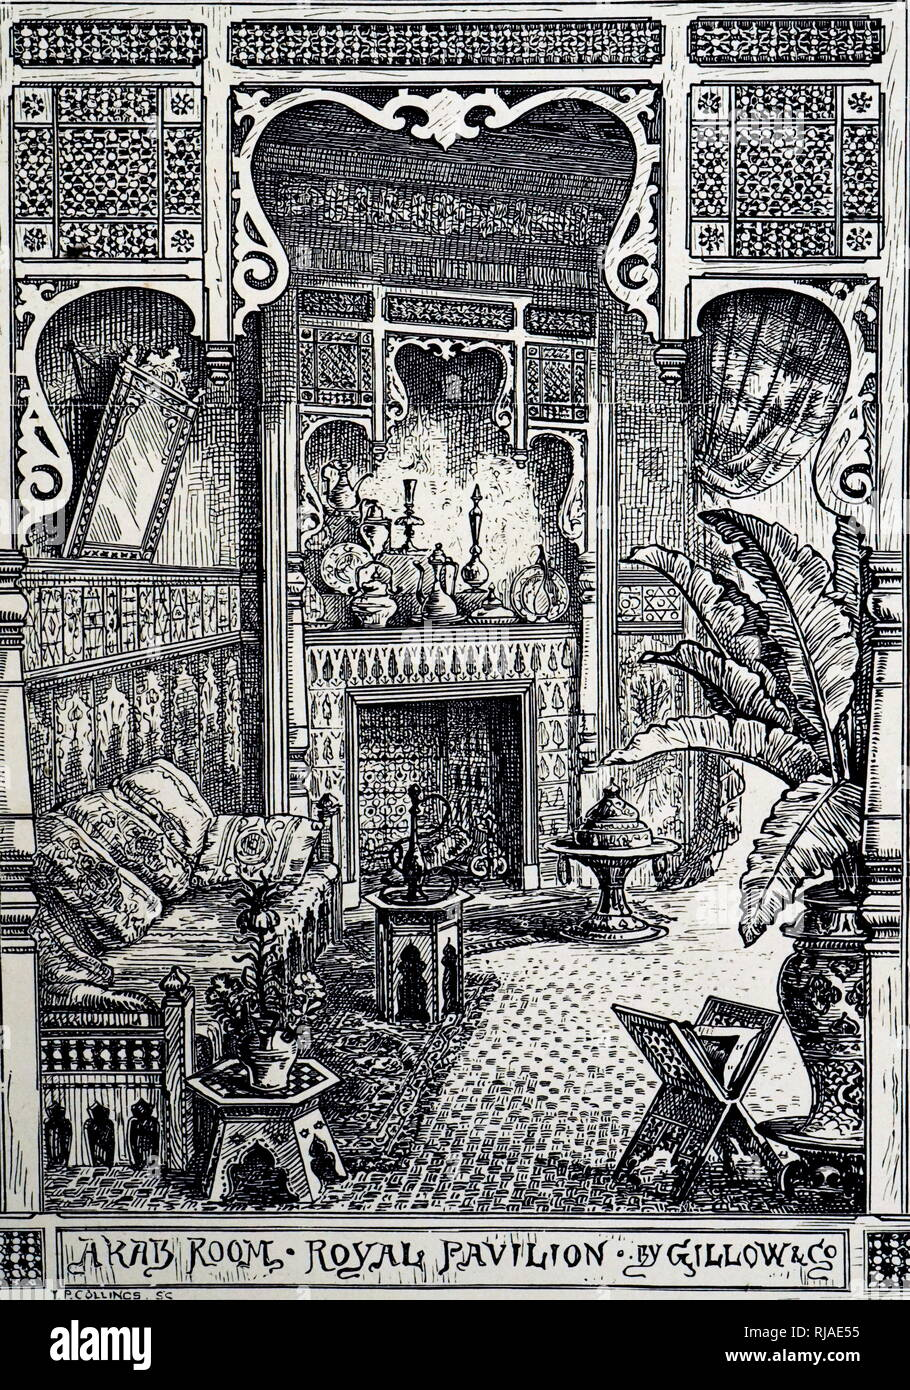 19th century advertisement, for Arab style interiors by 'Gillow & Co' for the International Exhibition; London; 1884 - Stock Image